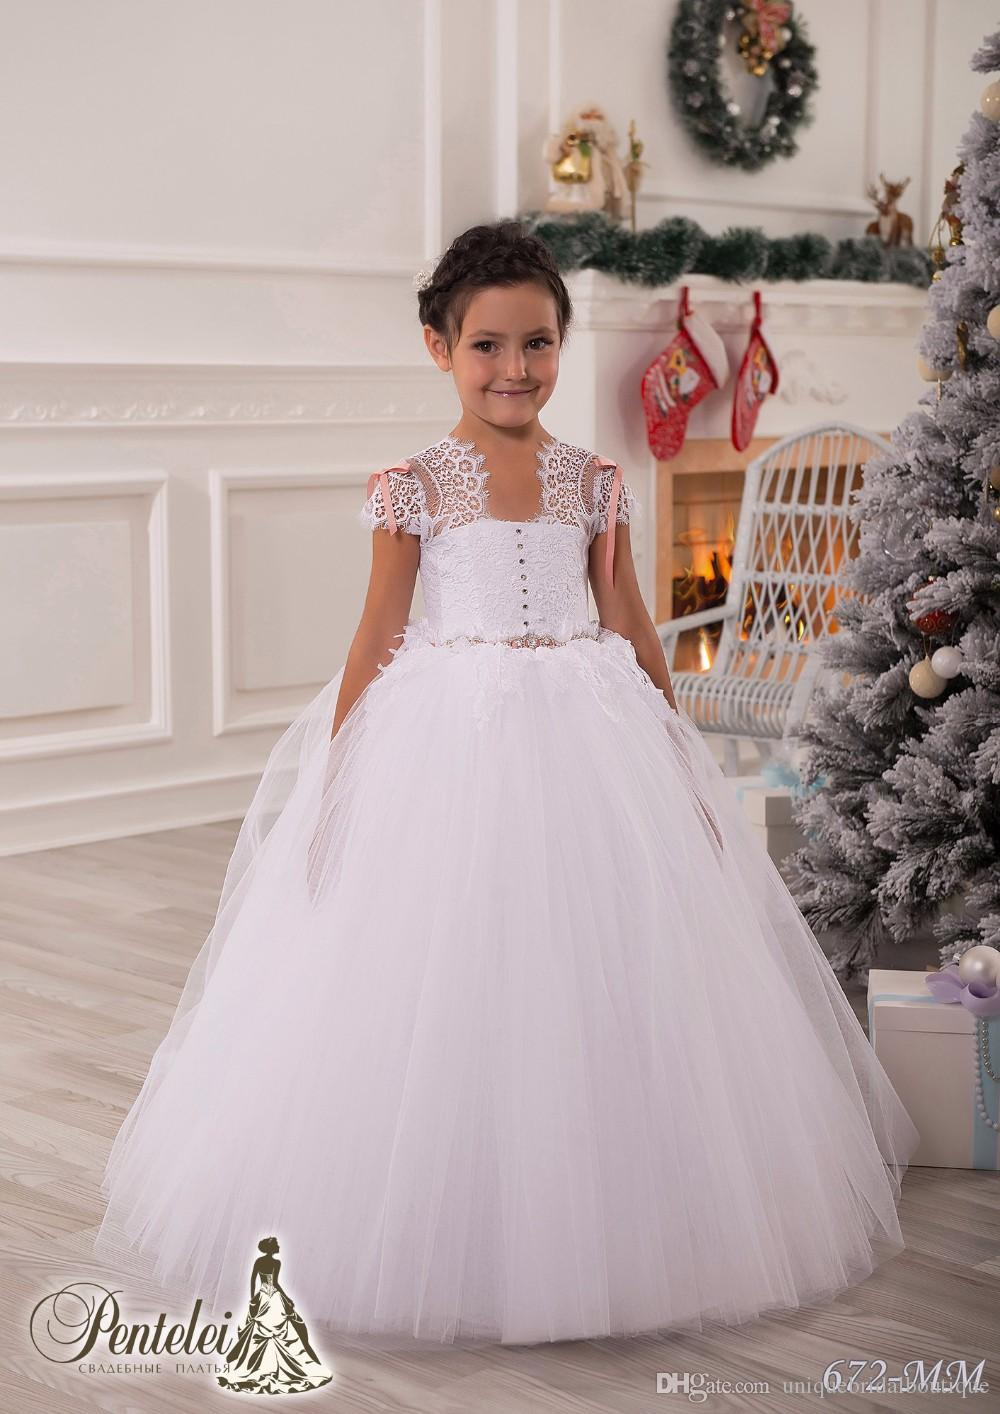 2016 In Stock Cheap Flower Girls Dresses under 50 with Cap Sleeves and Crystals Sash Lace & Tulle Little Ball Gown First Communion Gowns